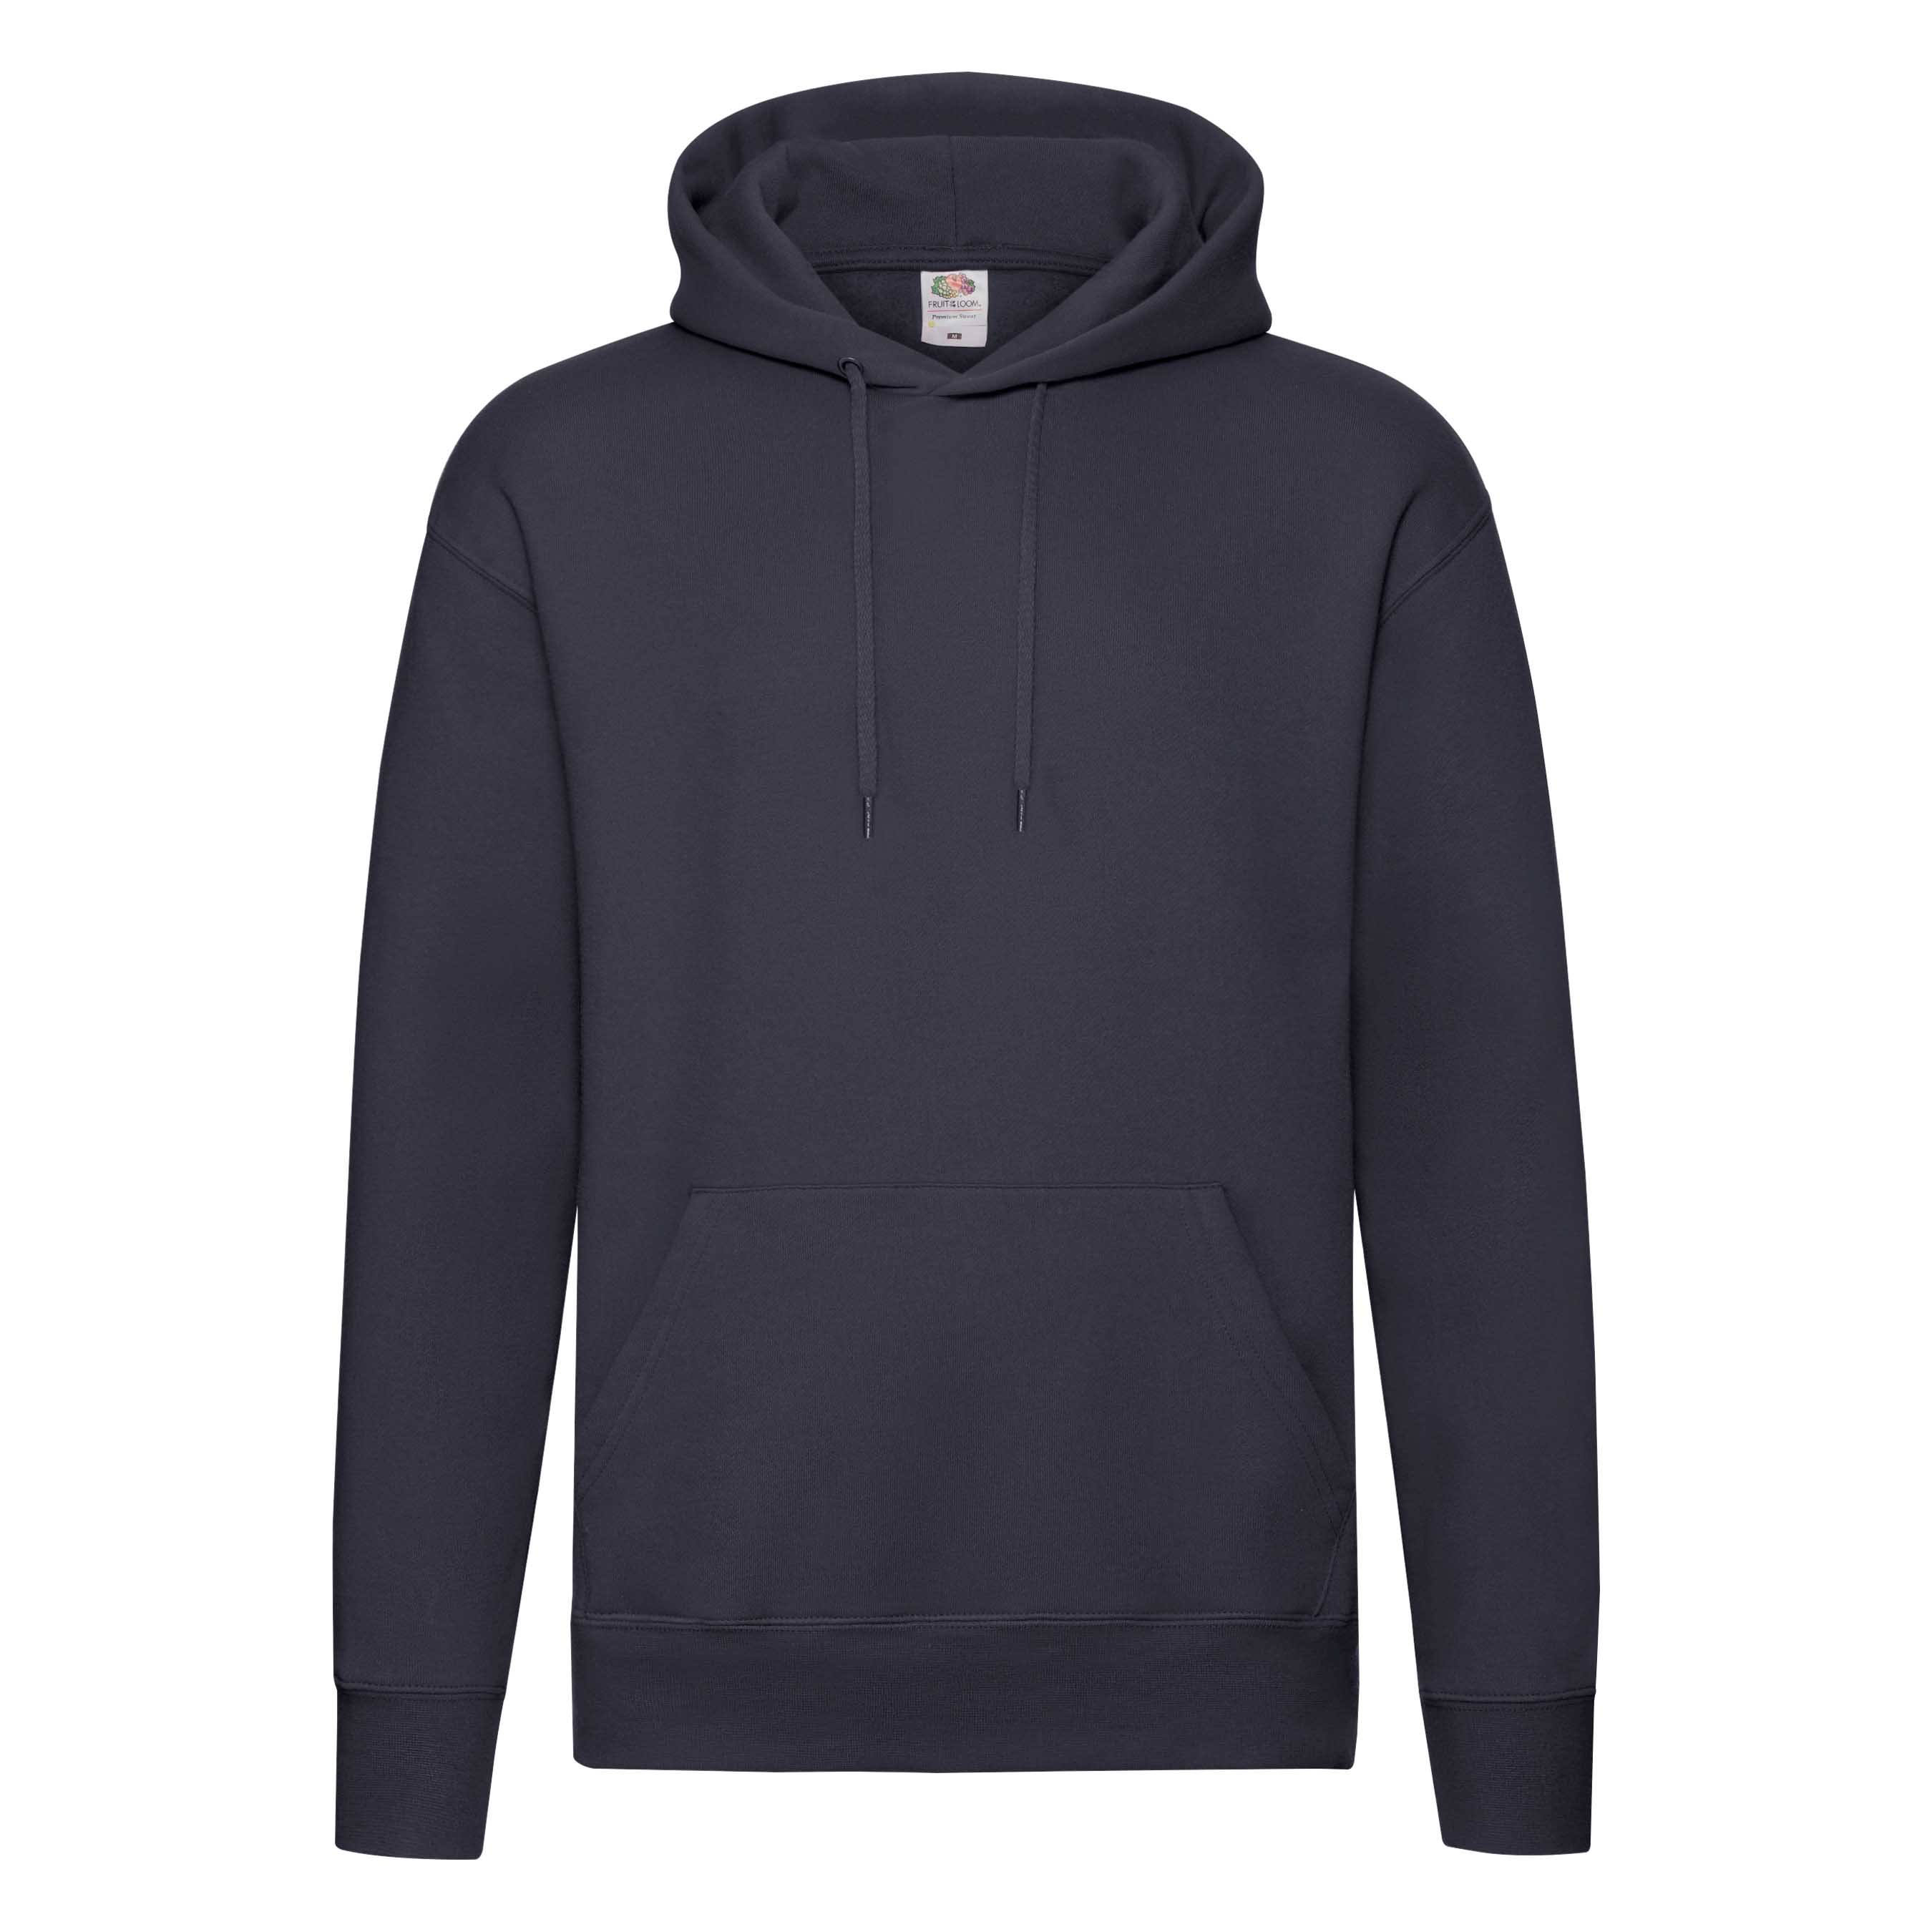 Męska bluza z kapturem Hooded Sweat